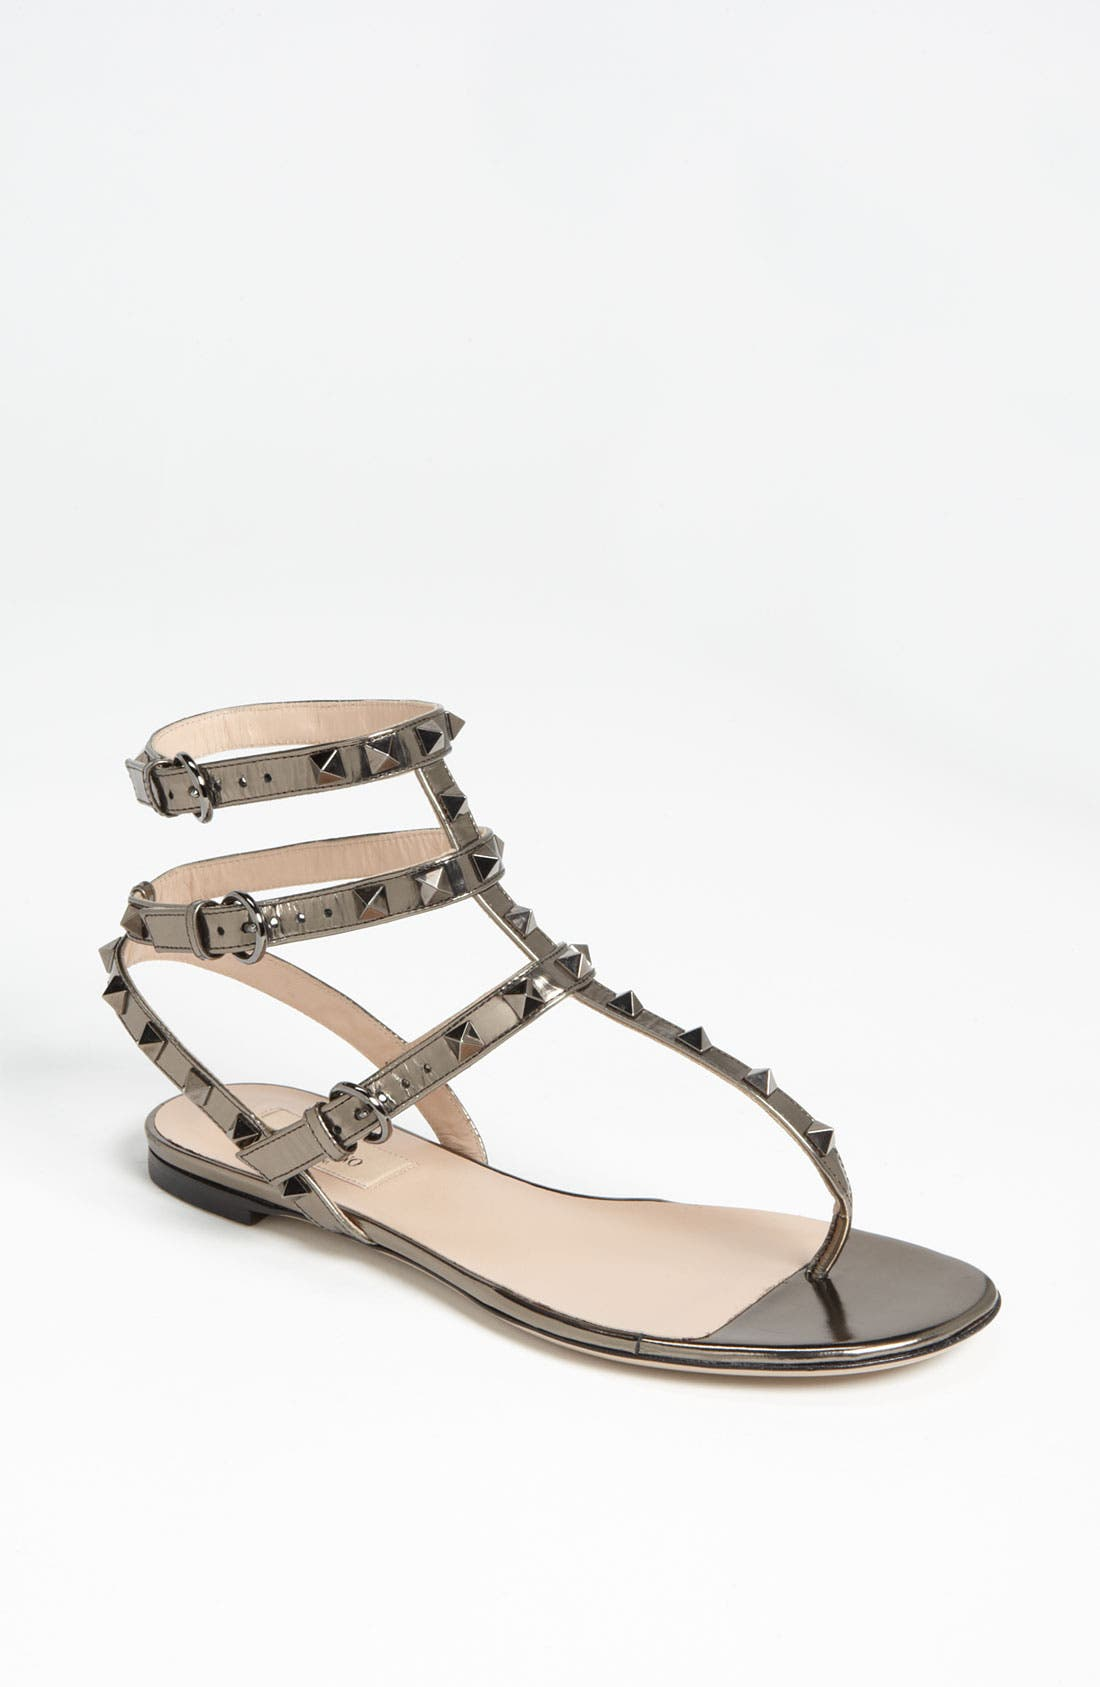 Alternate Image 1 Selected - VALENTINO GARAVANI 'Rockstud' Flat Sandal